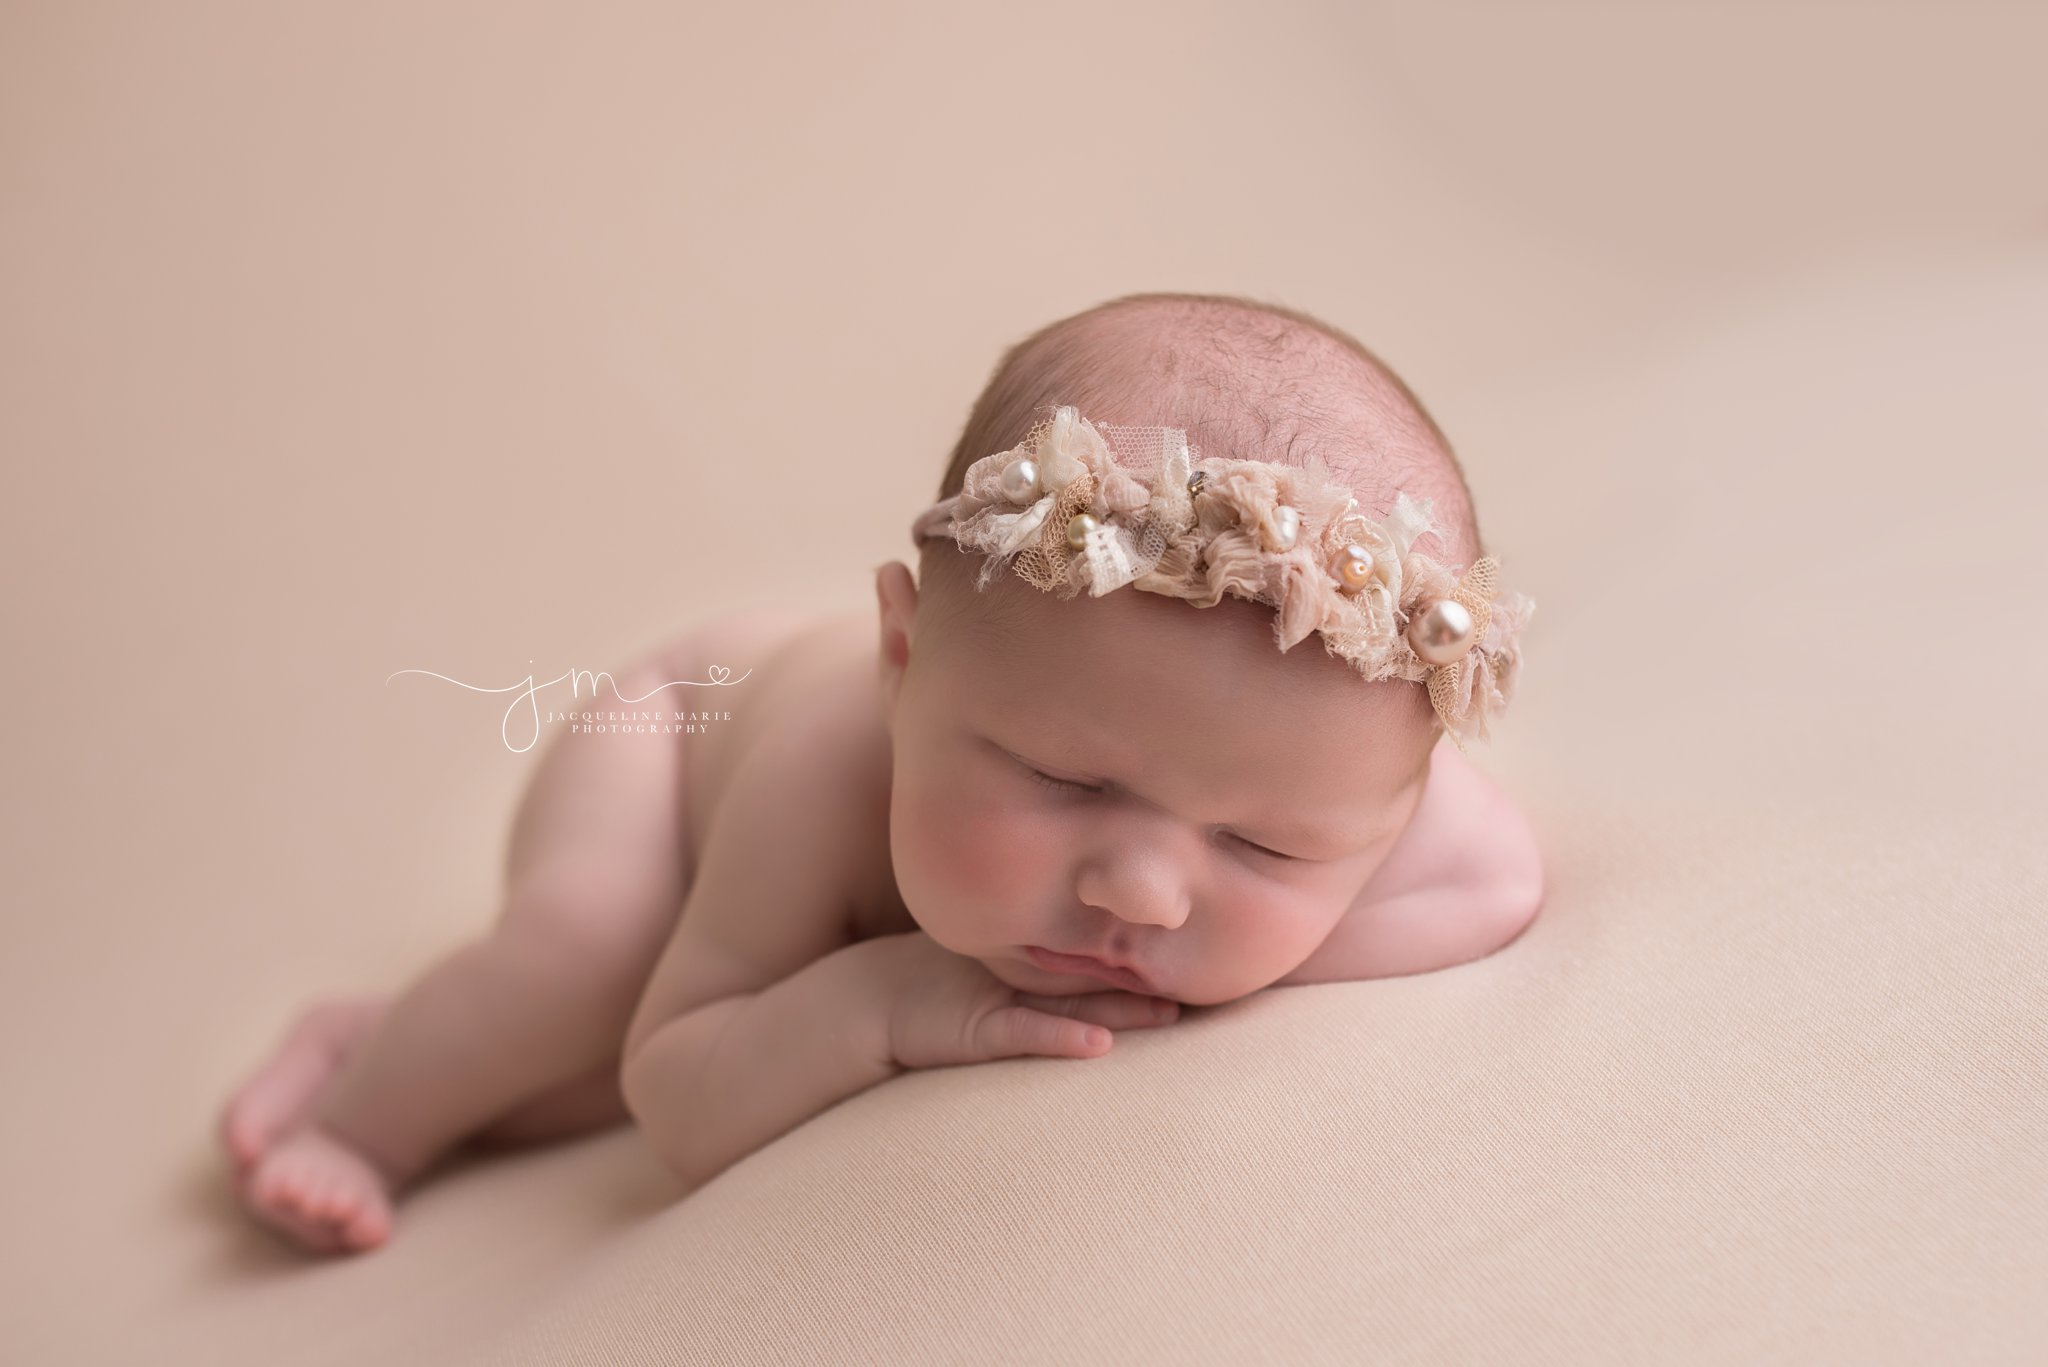 Columbus Ohio newborn wears pearl headband for portrait on blush pink blanket at Jacqueline Marie Photography